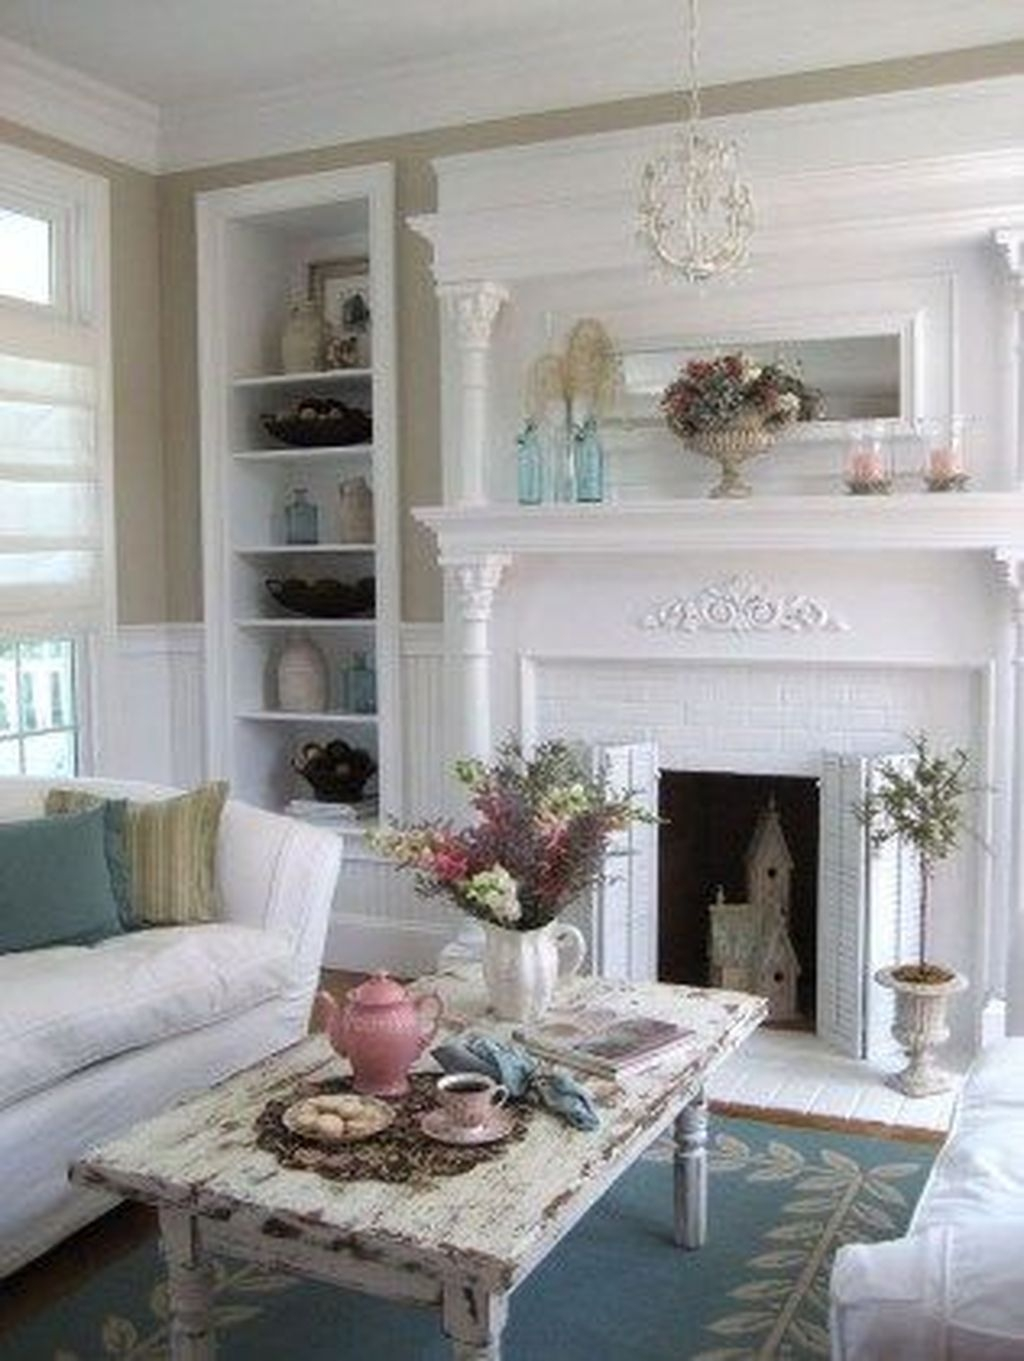 Cute Shabby Chic Farmhouse Living Room Design Ideas 05